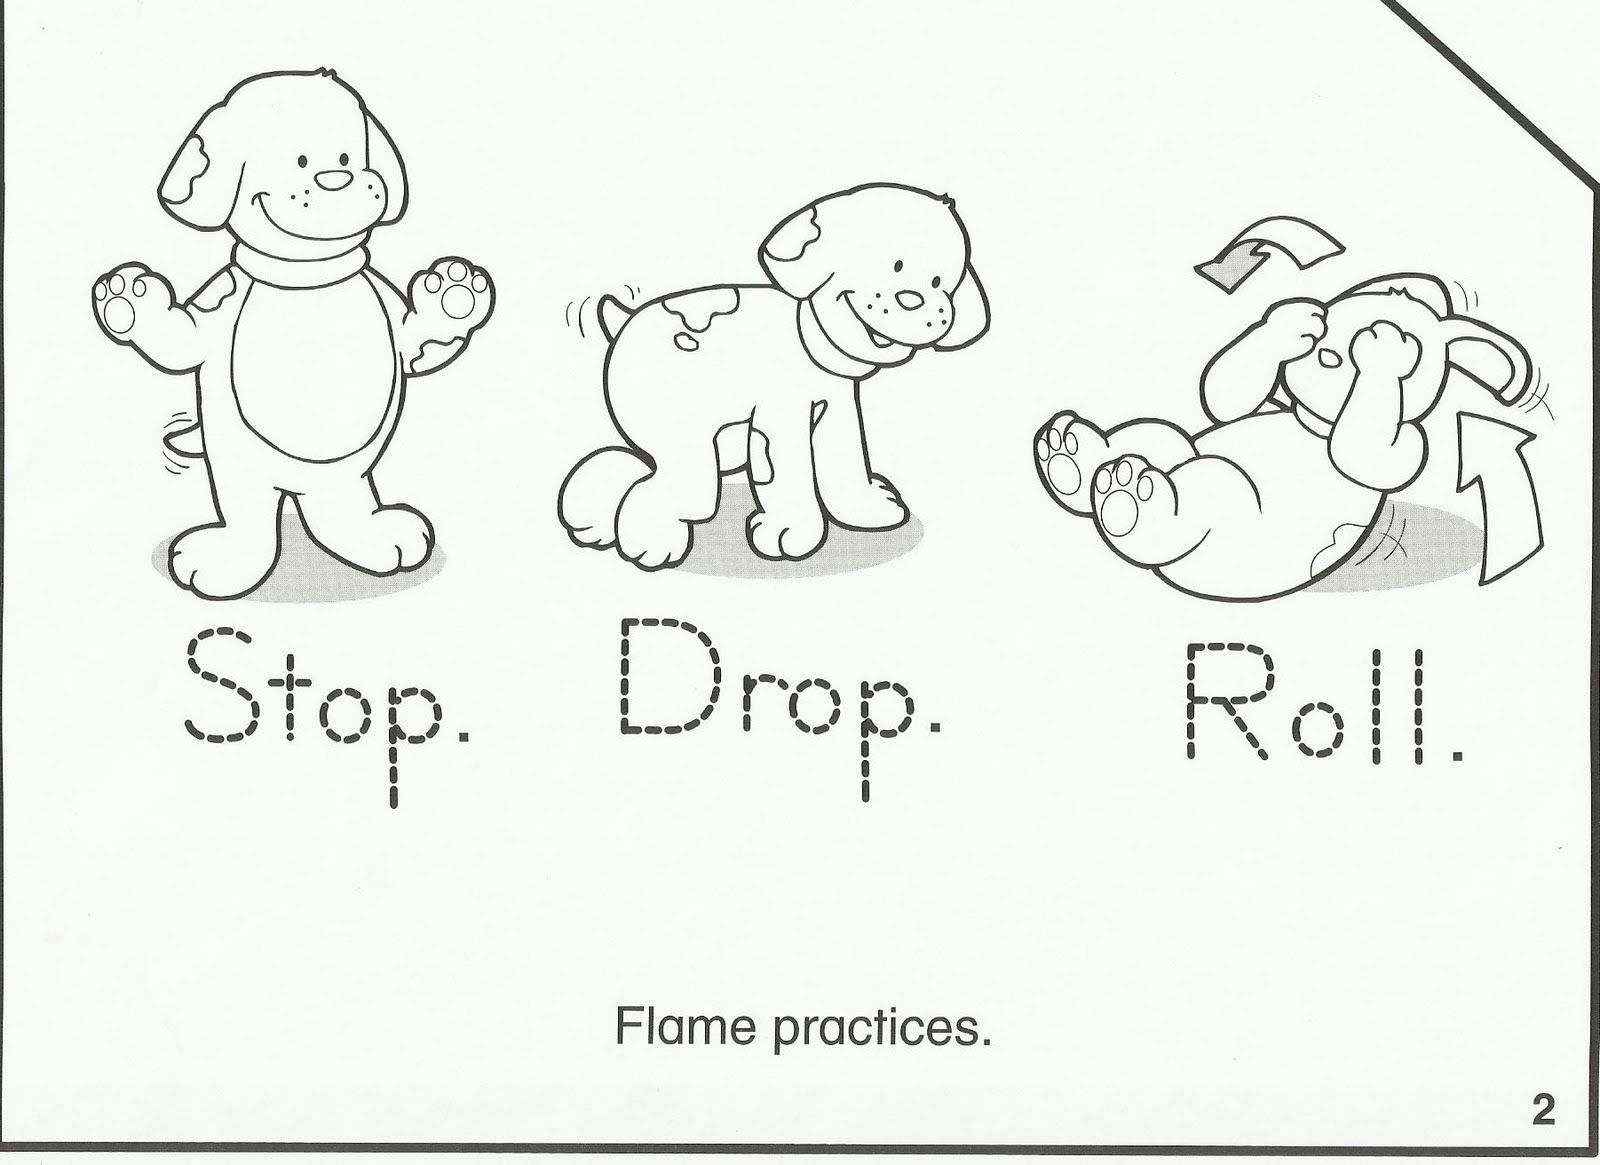 Fire Safety Coloring Pages For Preschool